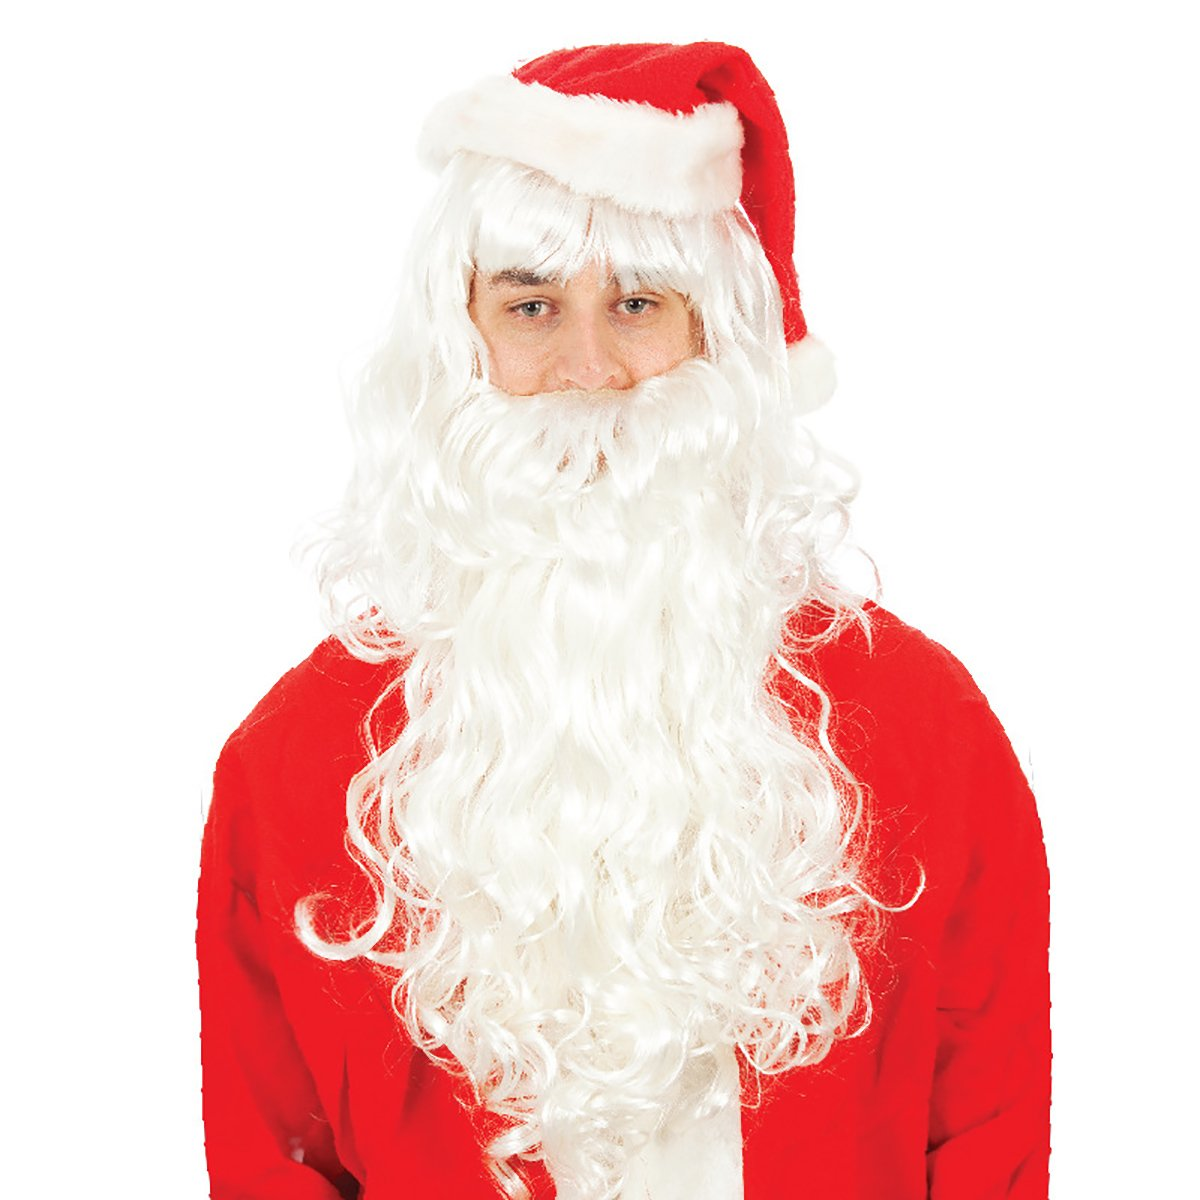 WTB Hair Santa Beard and Wig Set Santa Claus Father Christmas Wig Synthetic Hair Curly and Beard Set Deluxe White Santa Fancy Dress Costume with Christmas